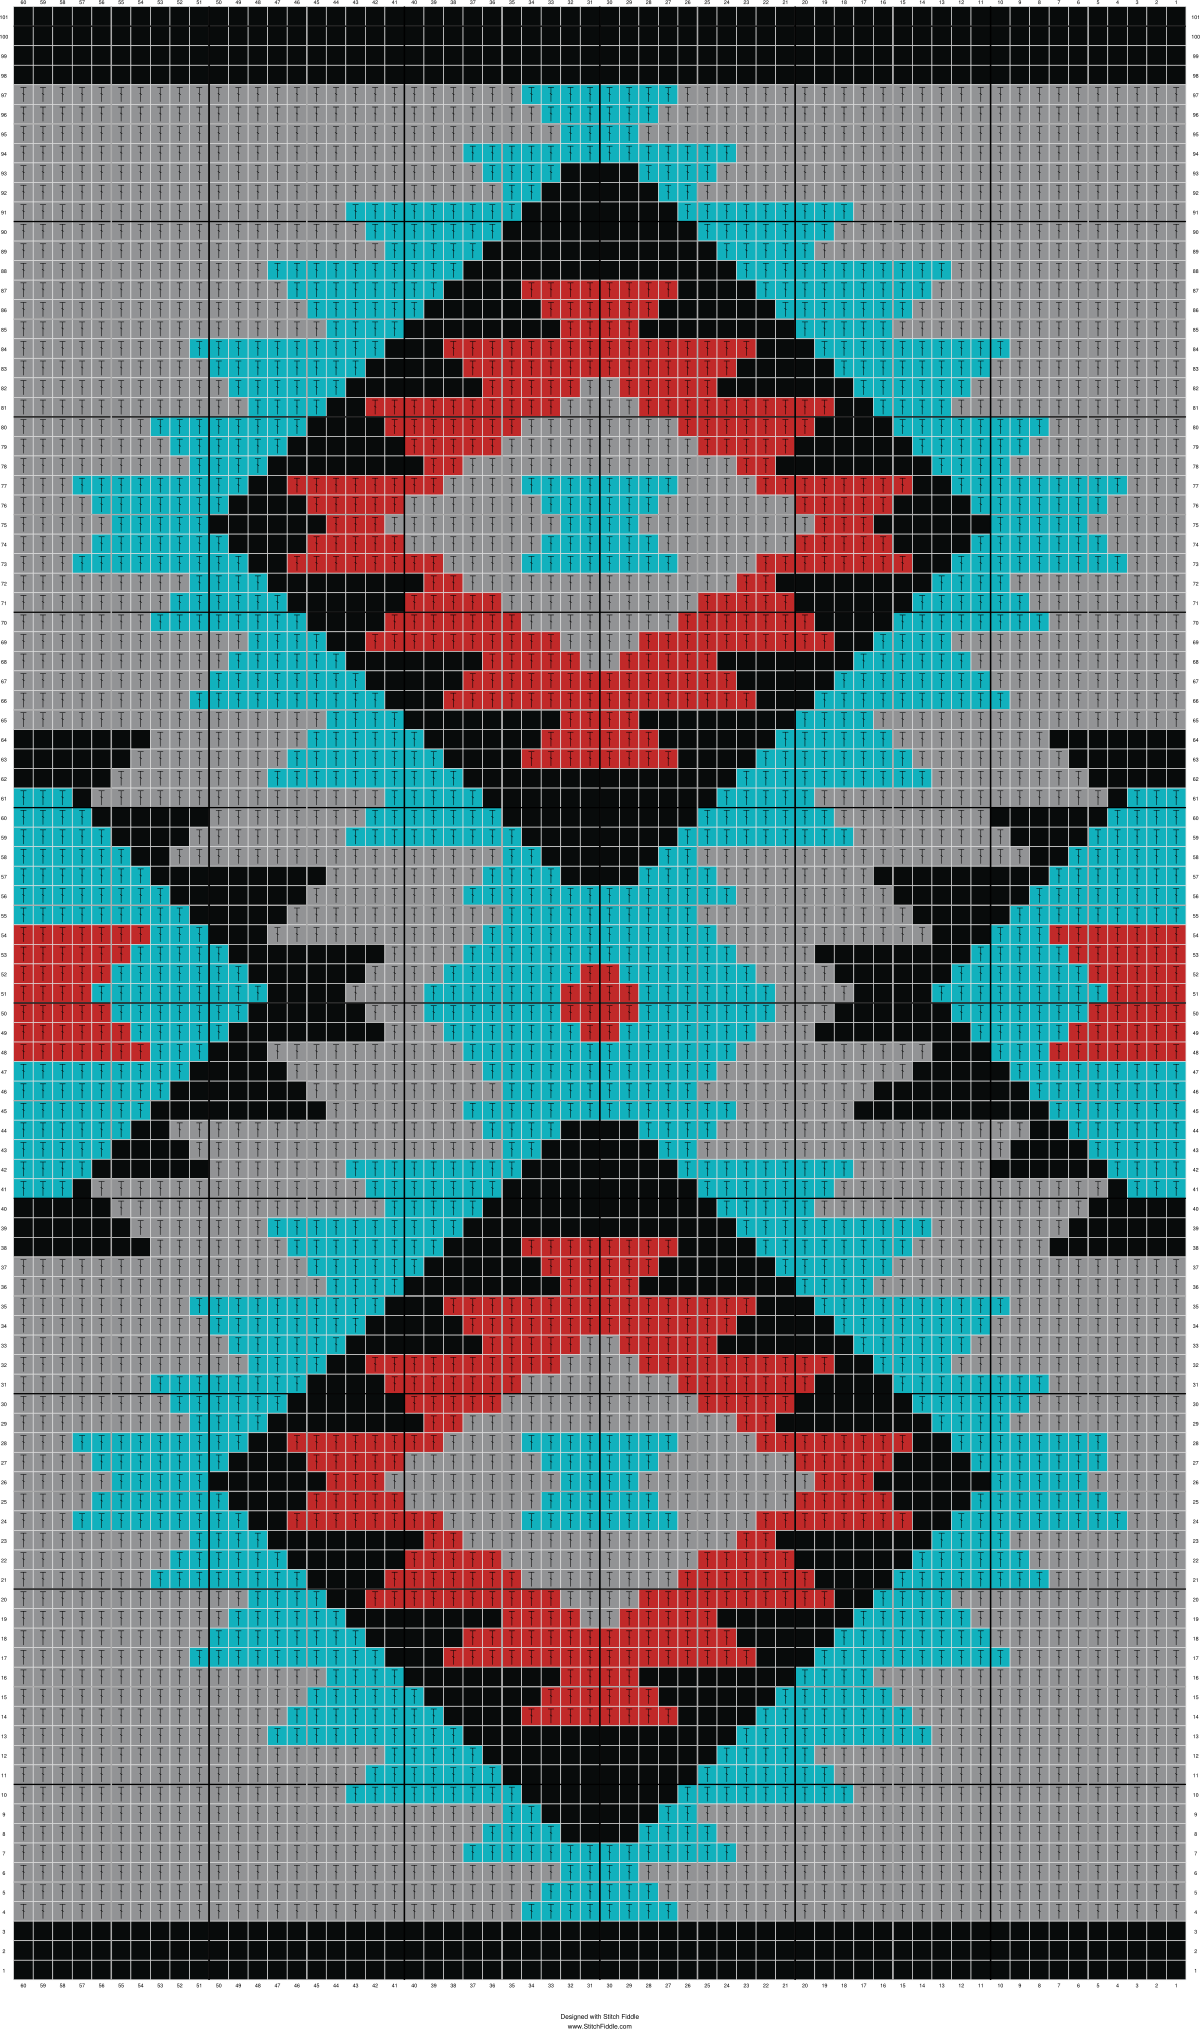 20 C2c Crochet Chart Maker Pictures And Ideas On Meta Networks